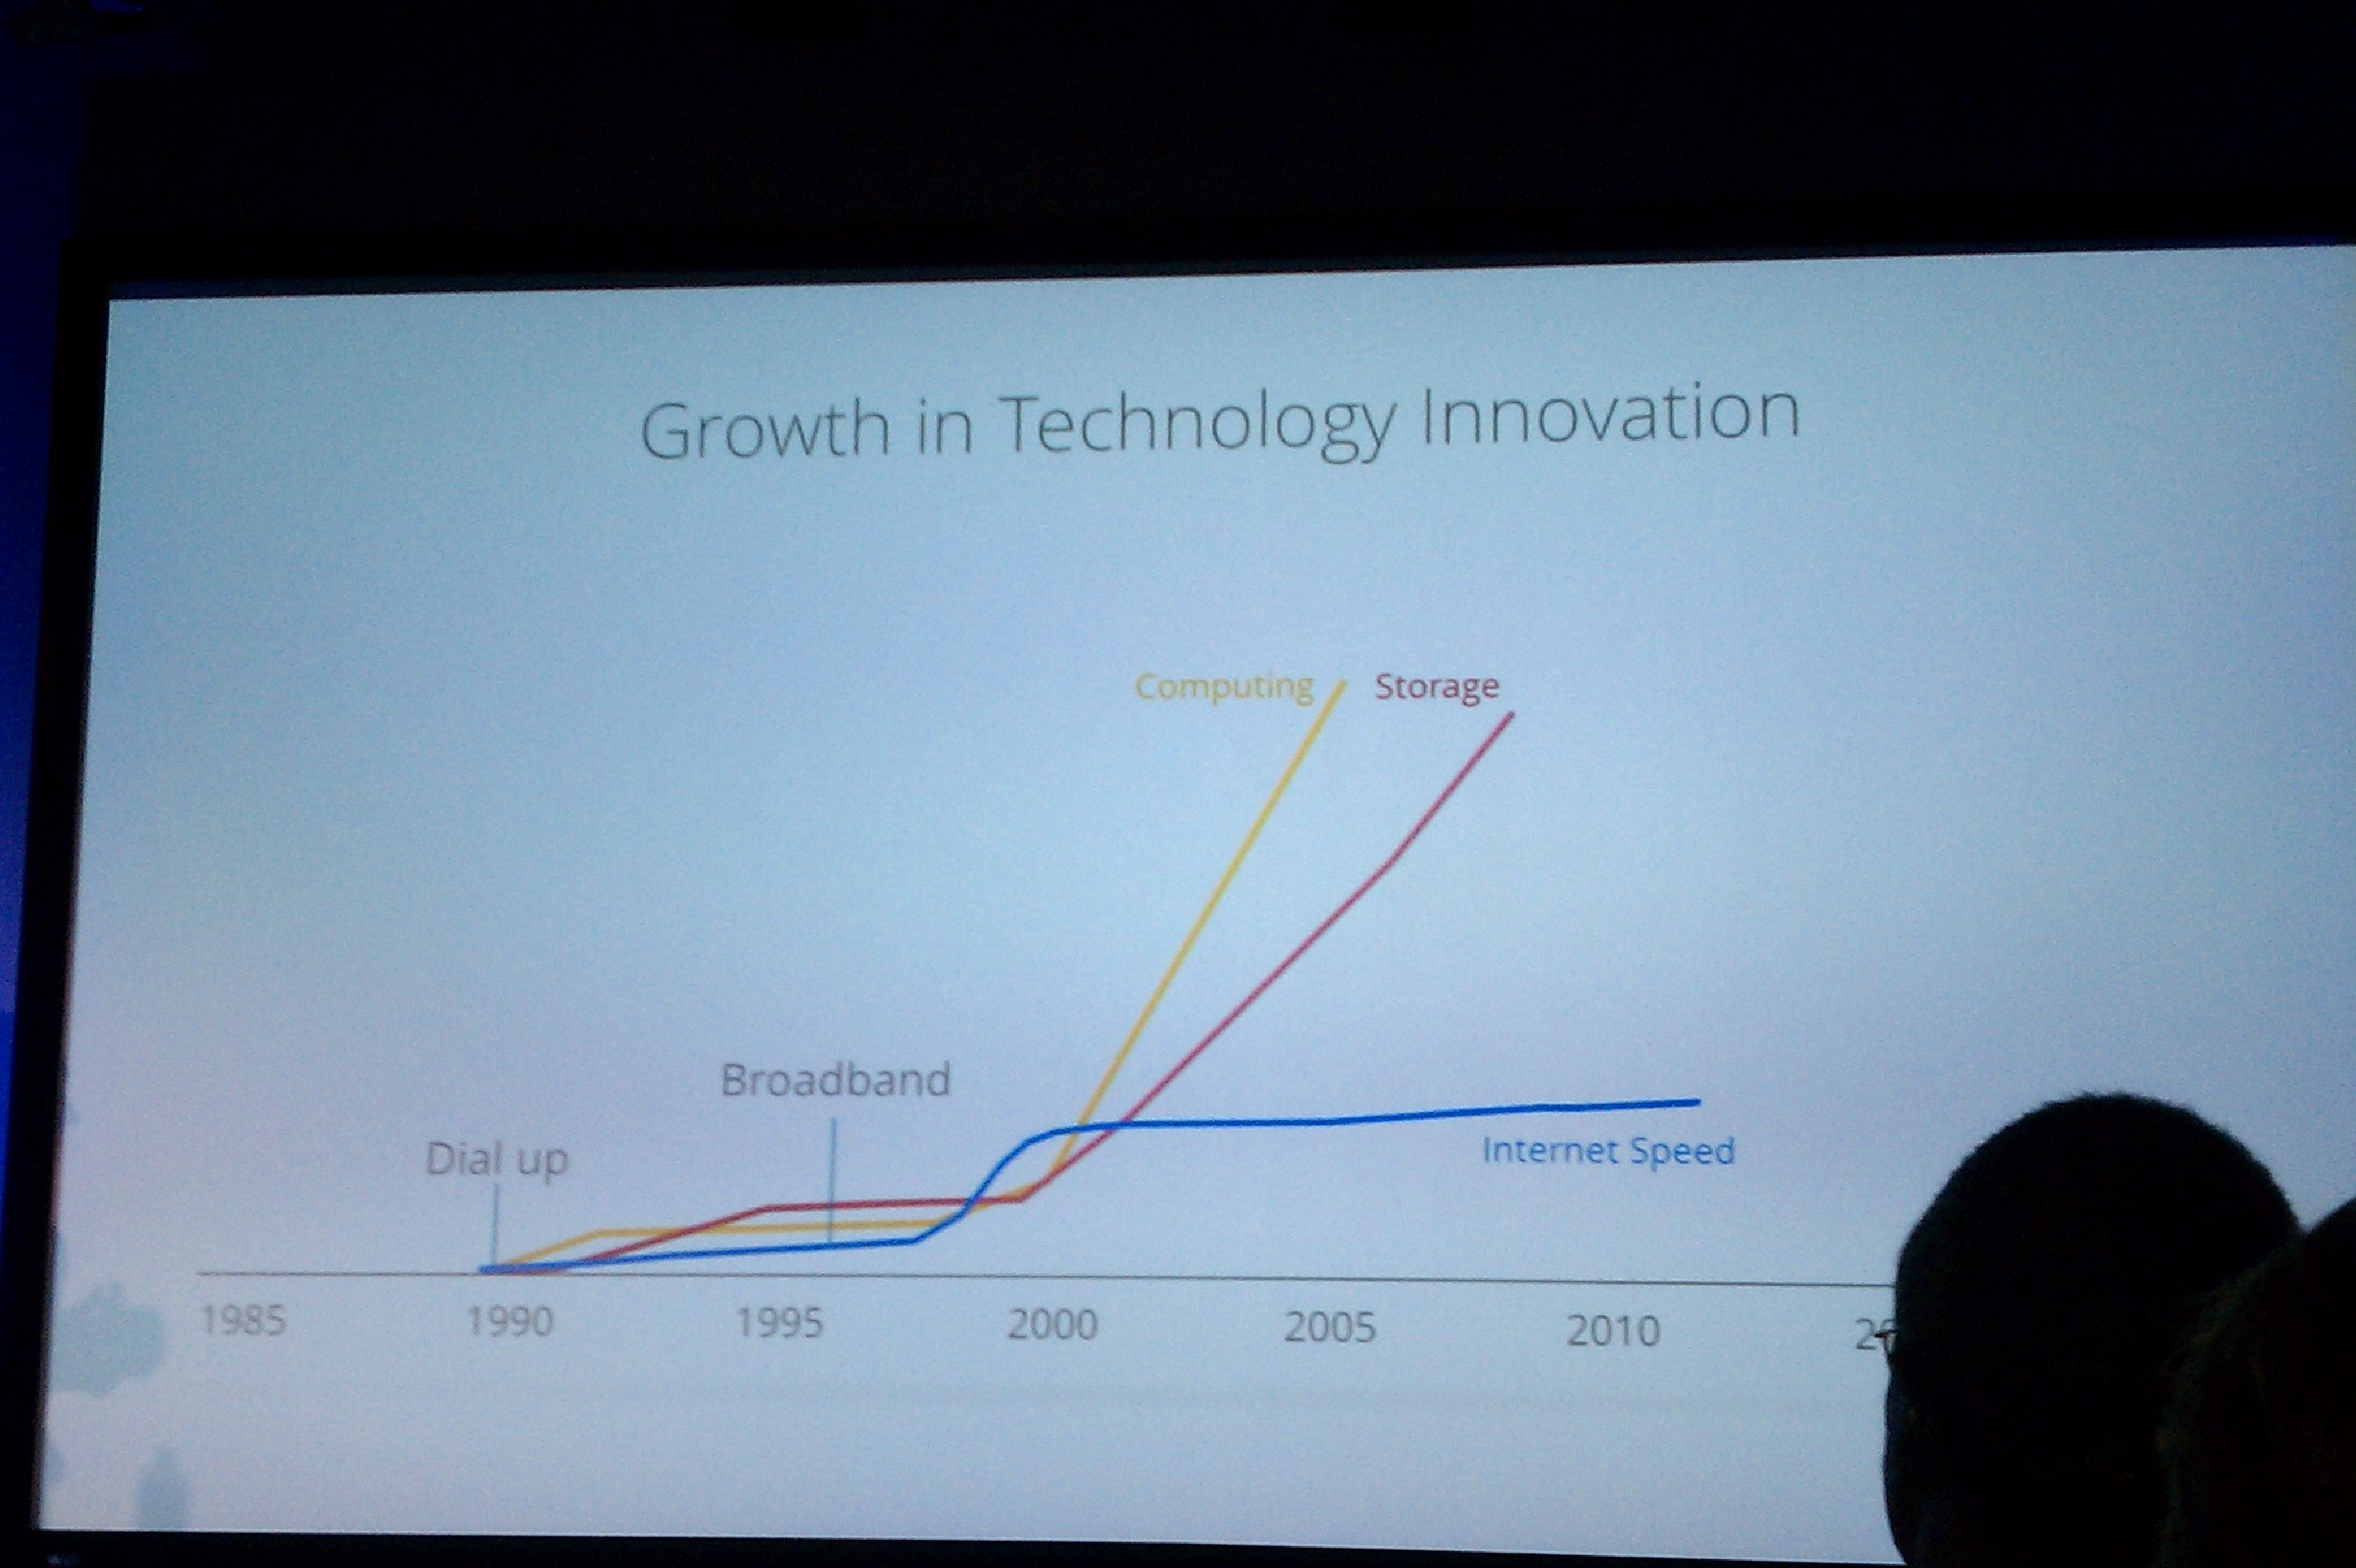 Growth in Technology Innovation